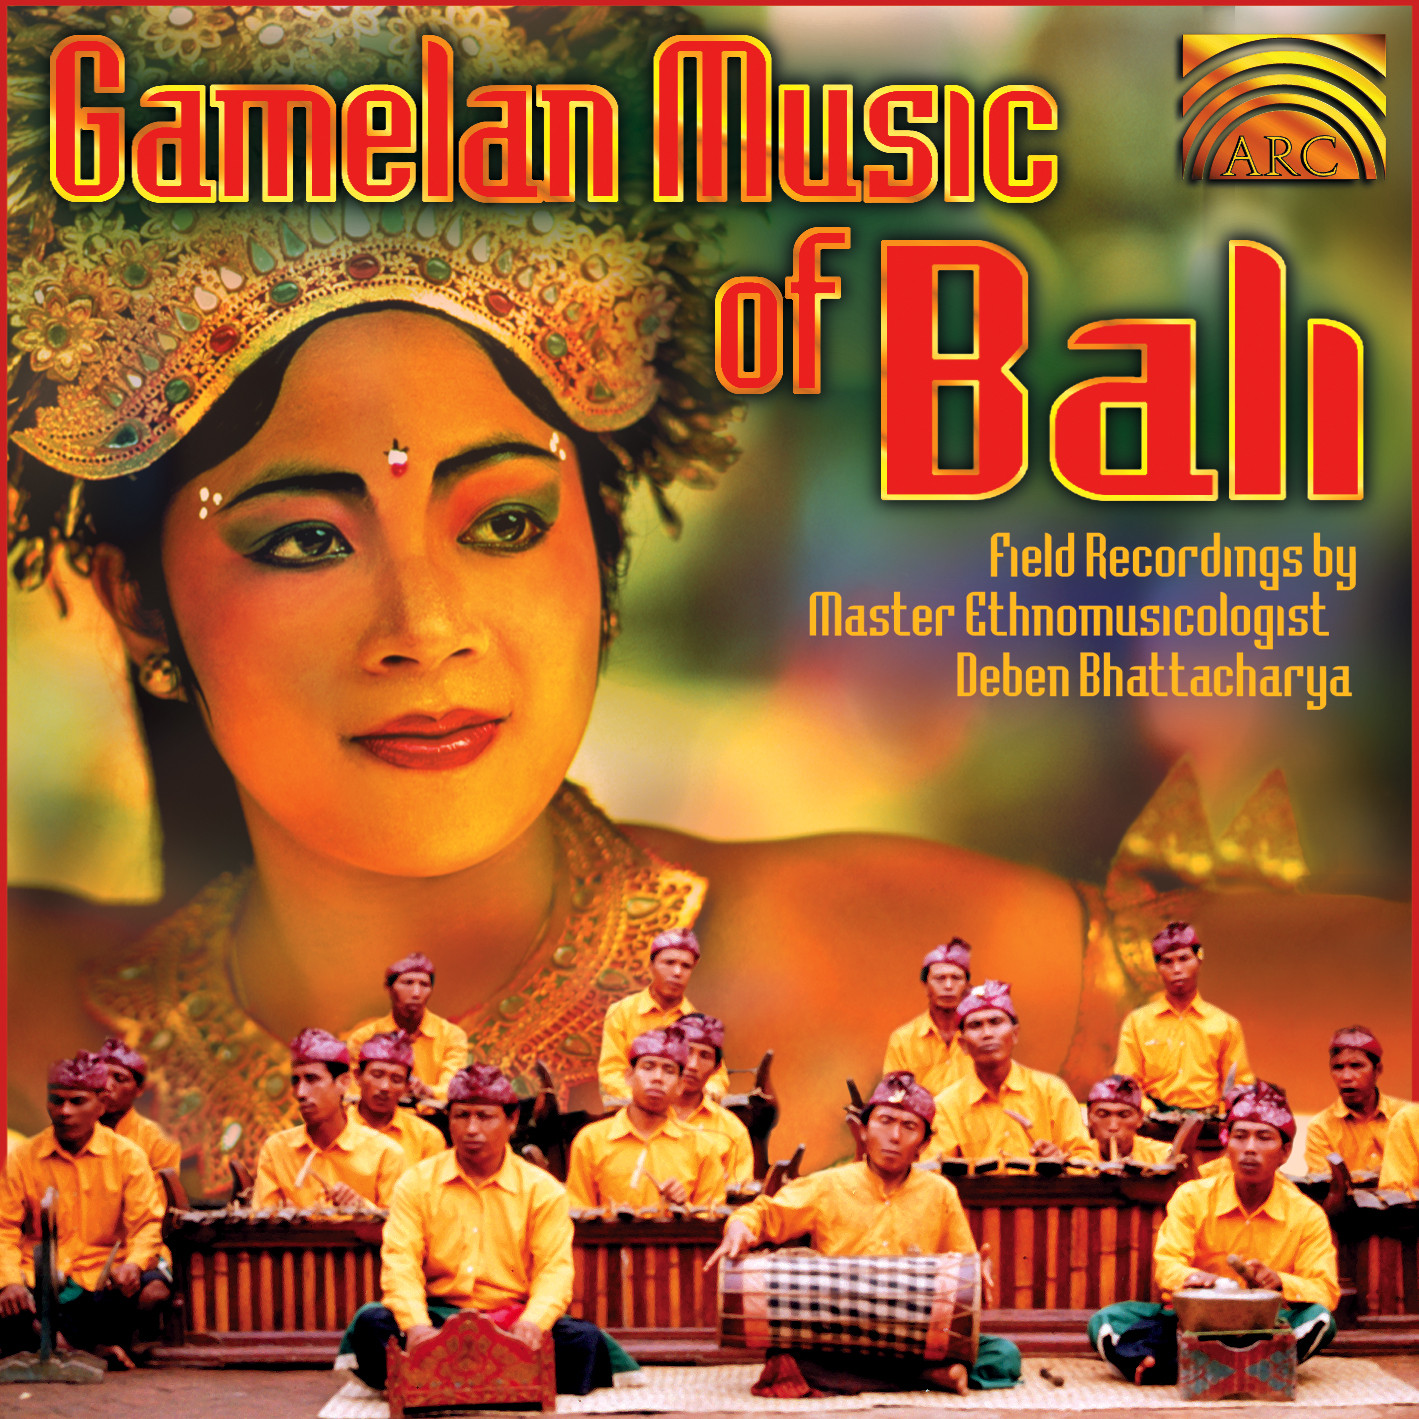 EUCD1534 Gamelan Music of Bali - Field Recordings by Deben Bhattacharya